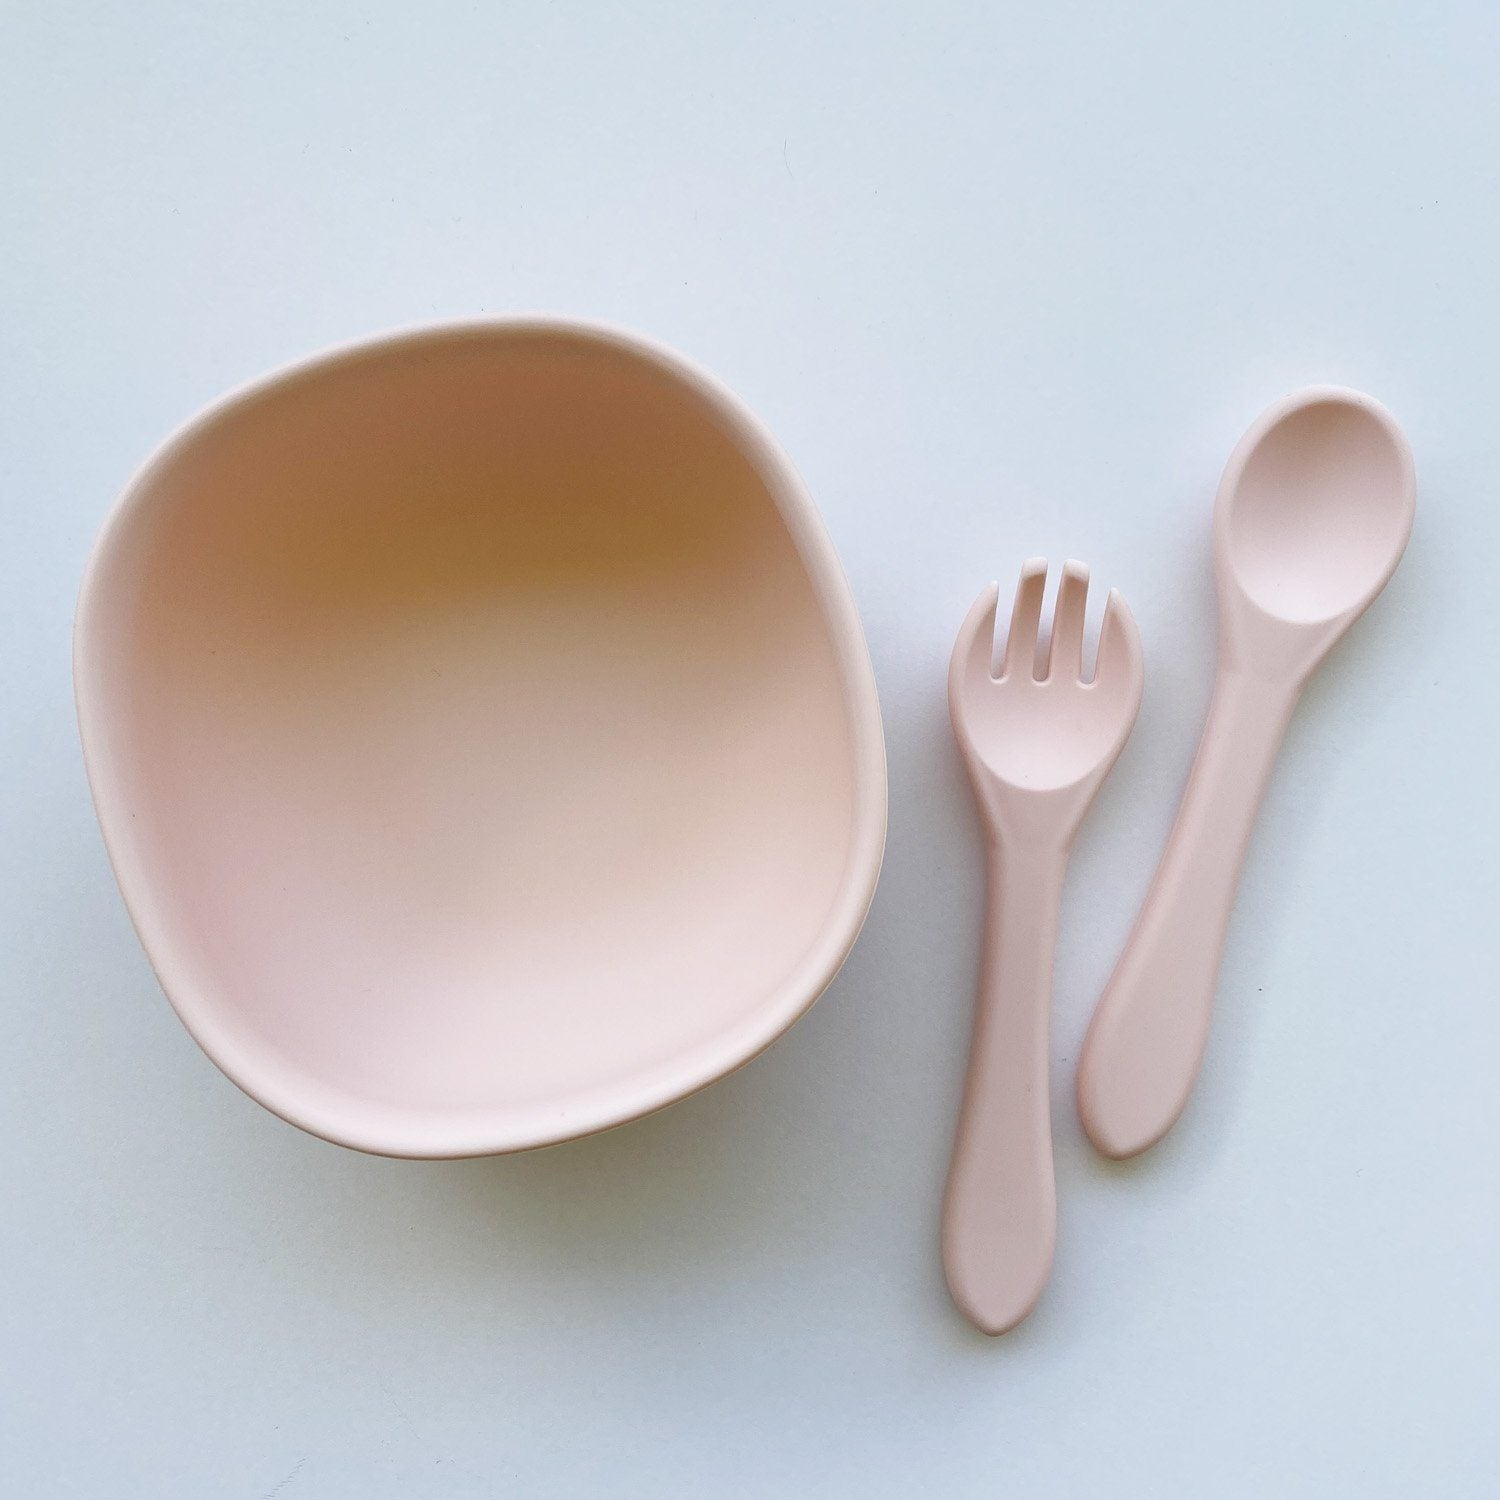 Silicone Suction Bowl & Cutlery